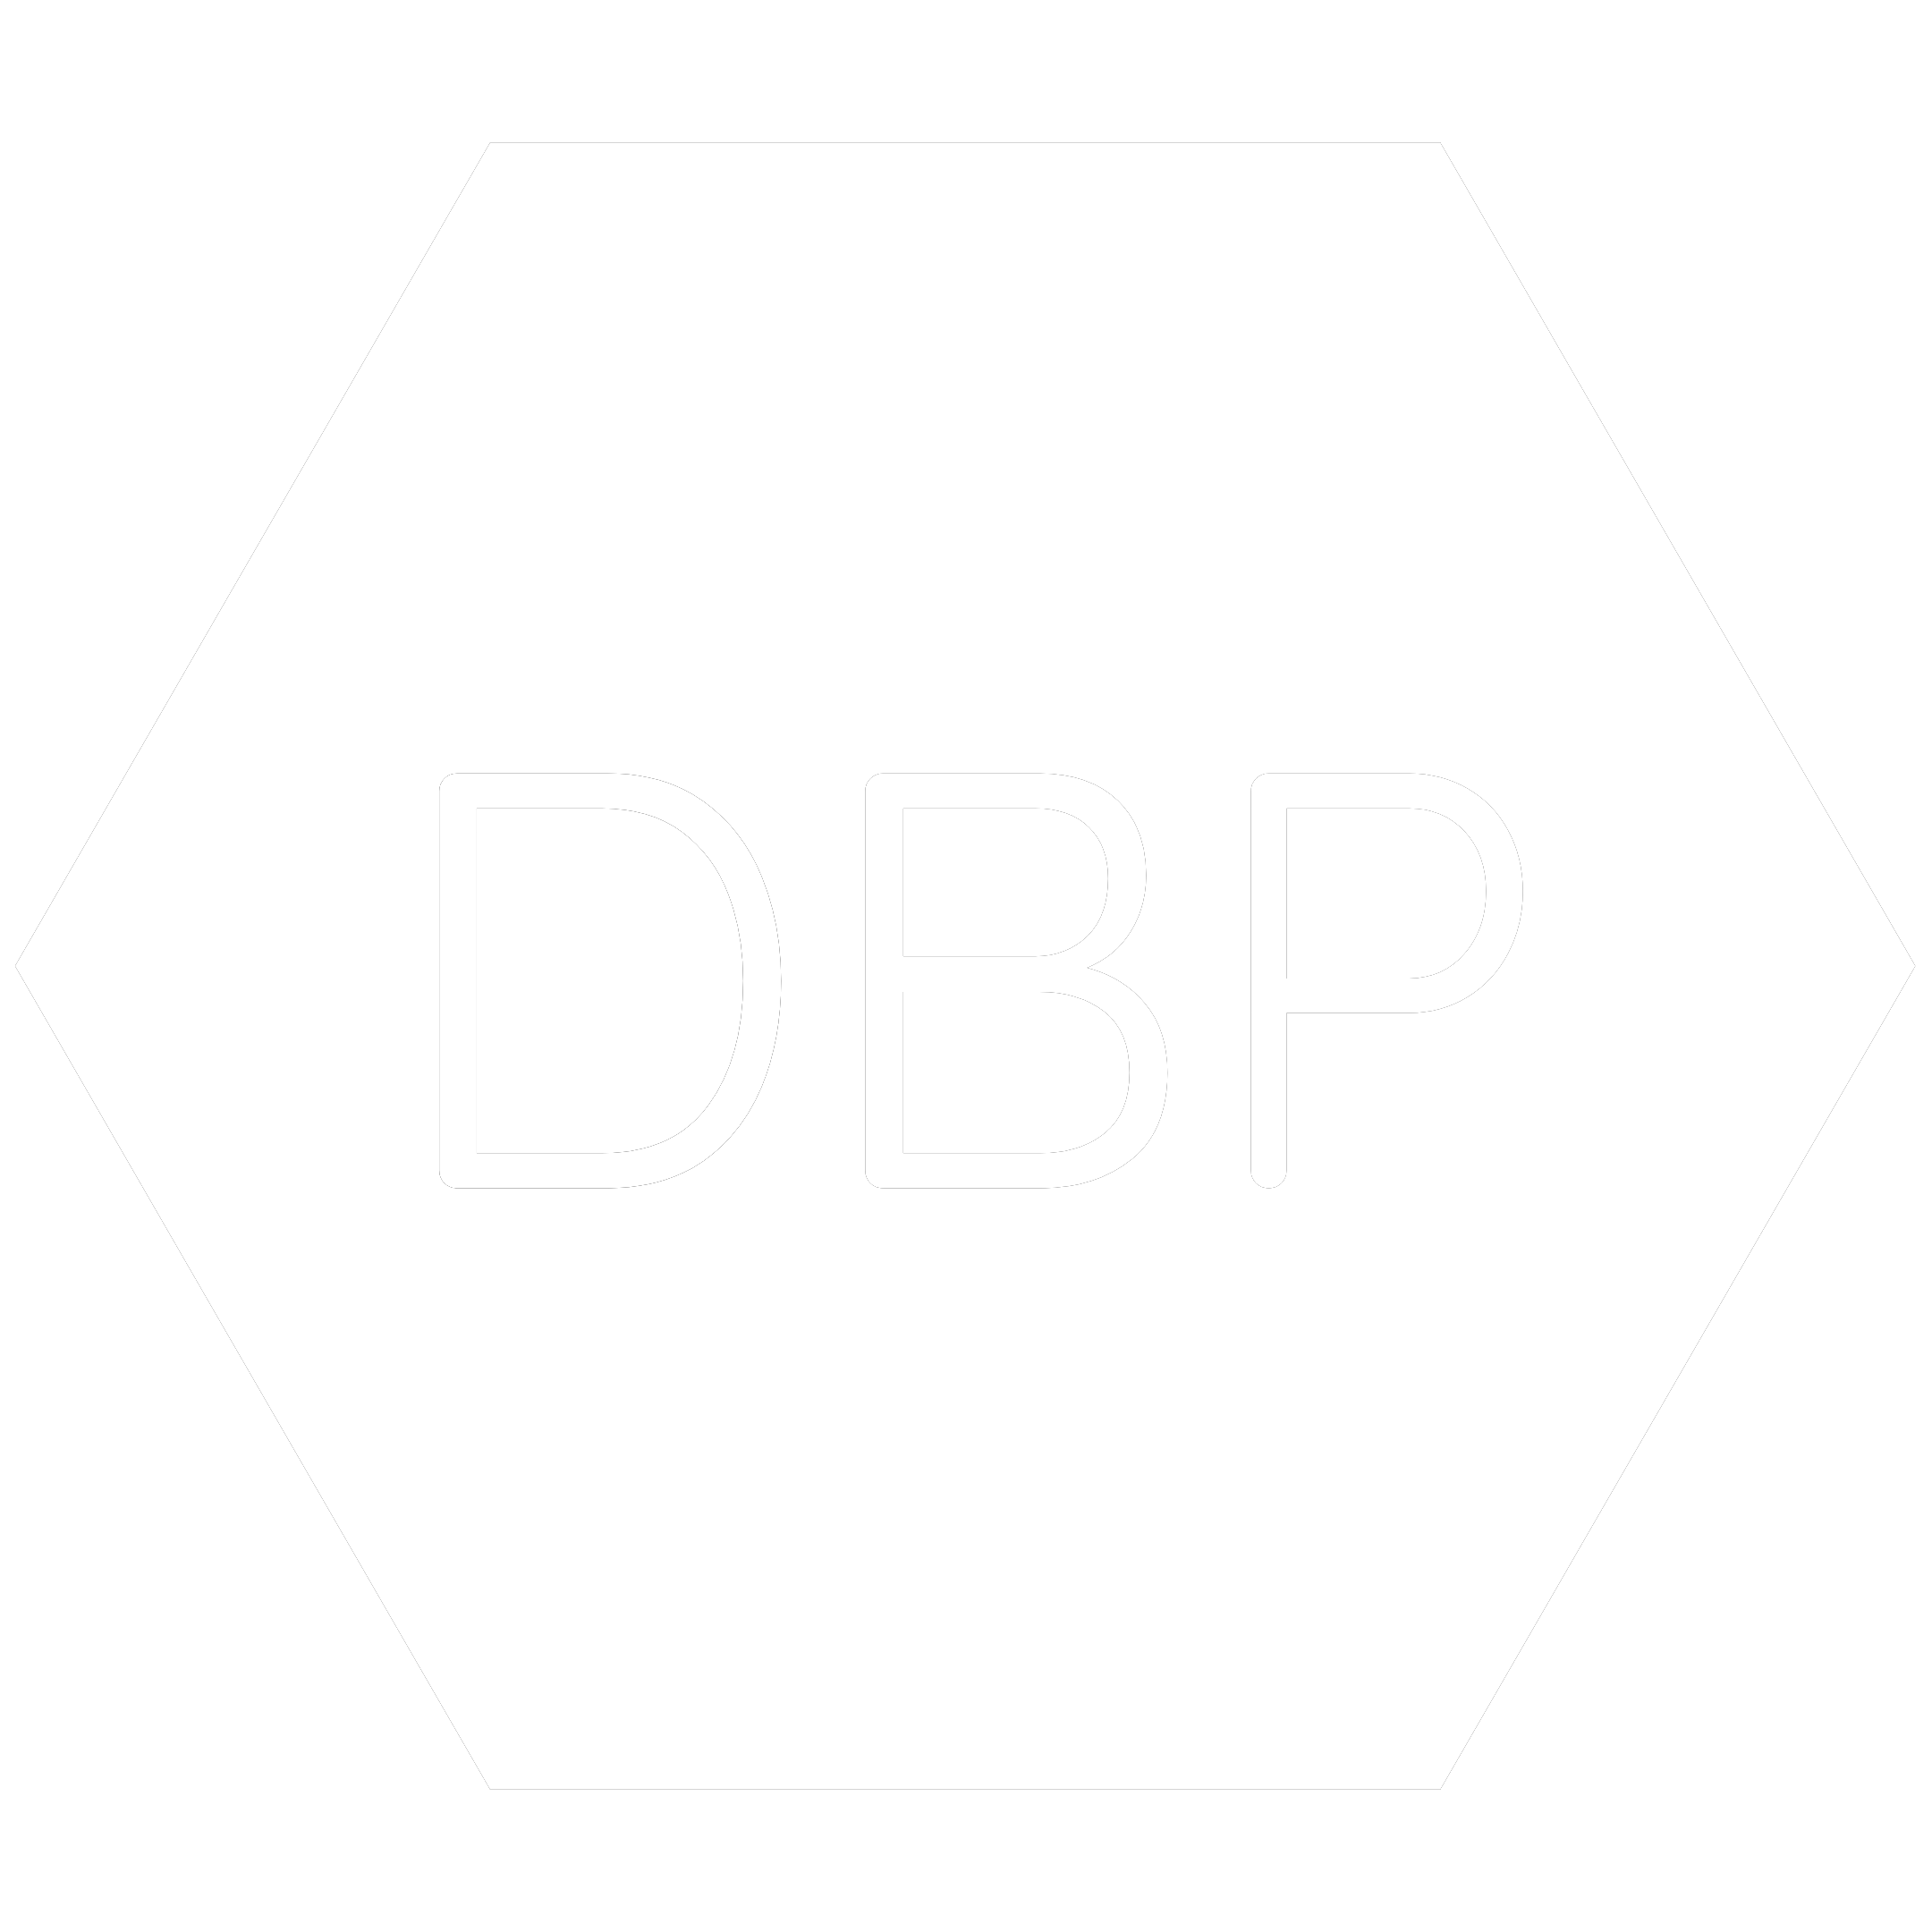 White hexagon icon with the chemical symbol for Dibutyl Phthalate which is a banned RoHS substance.